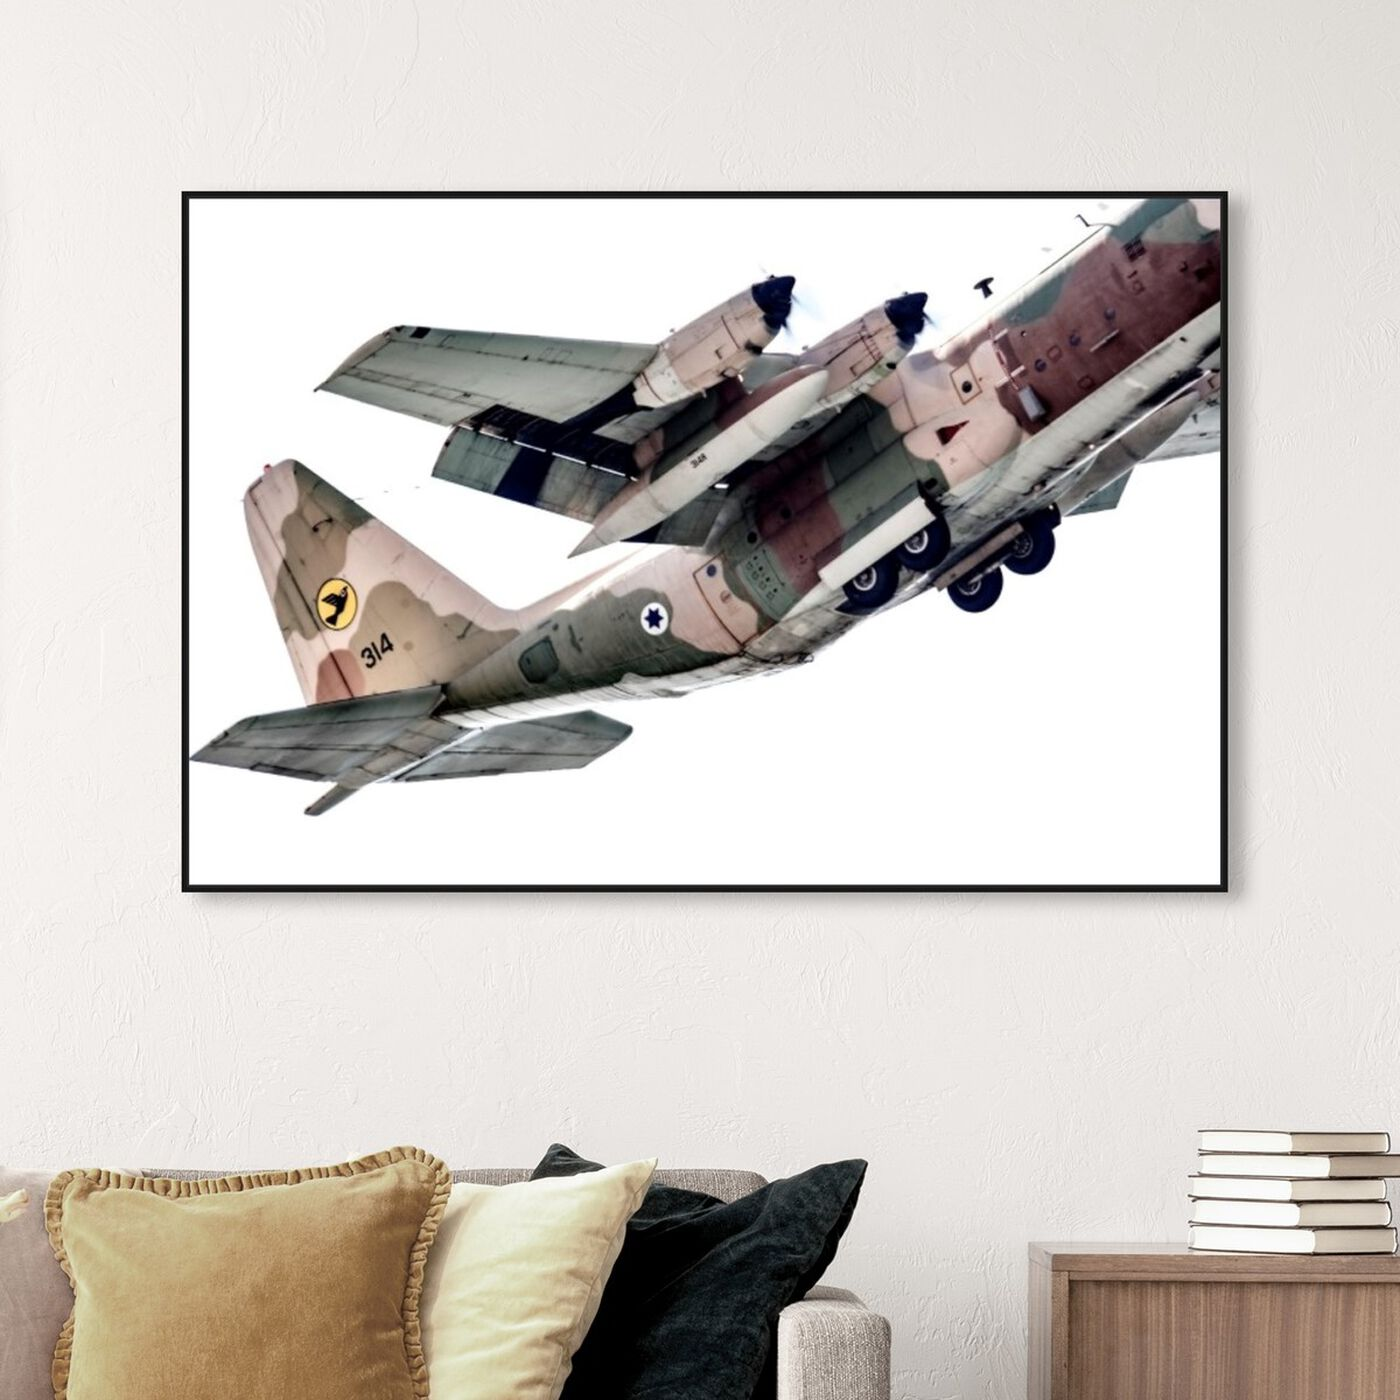 Hanging view of Power featuring transportation and airplanes art.